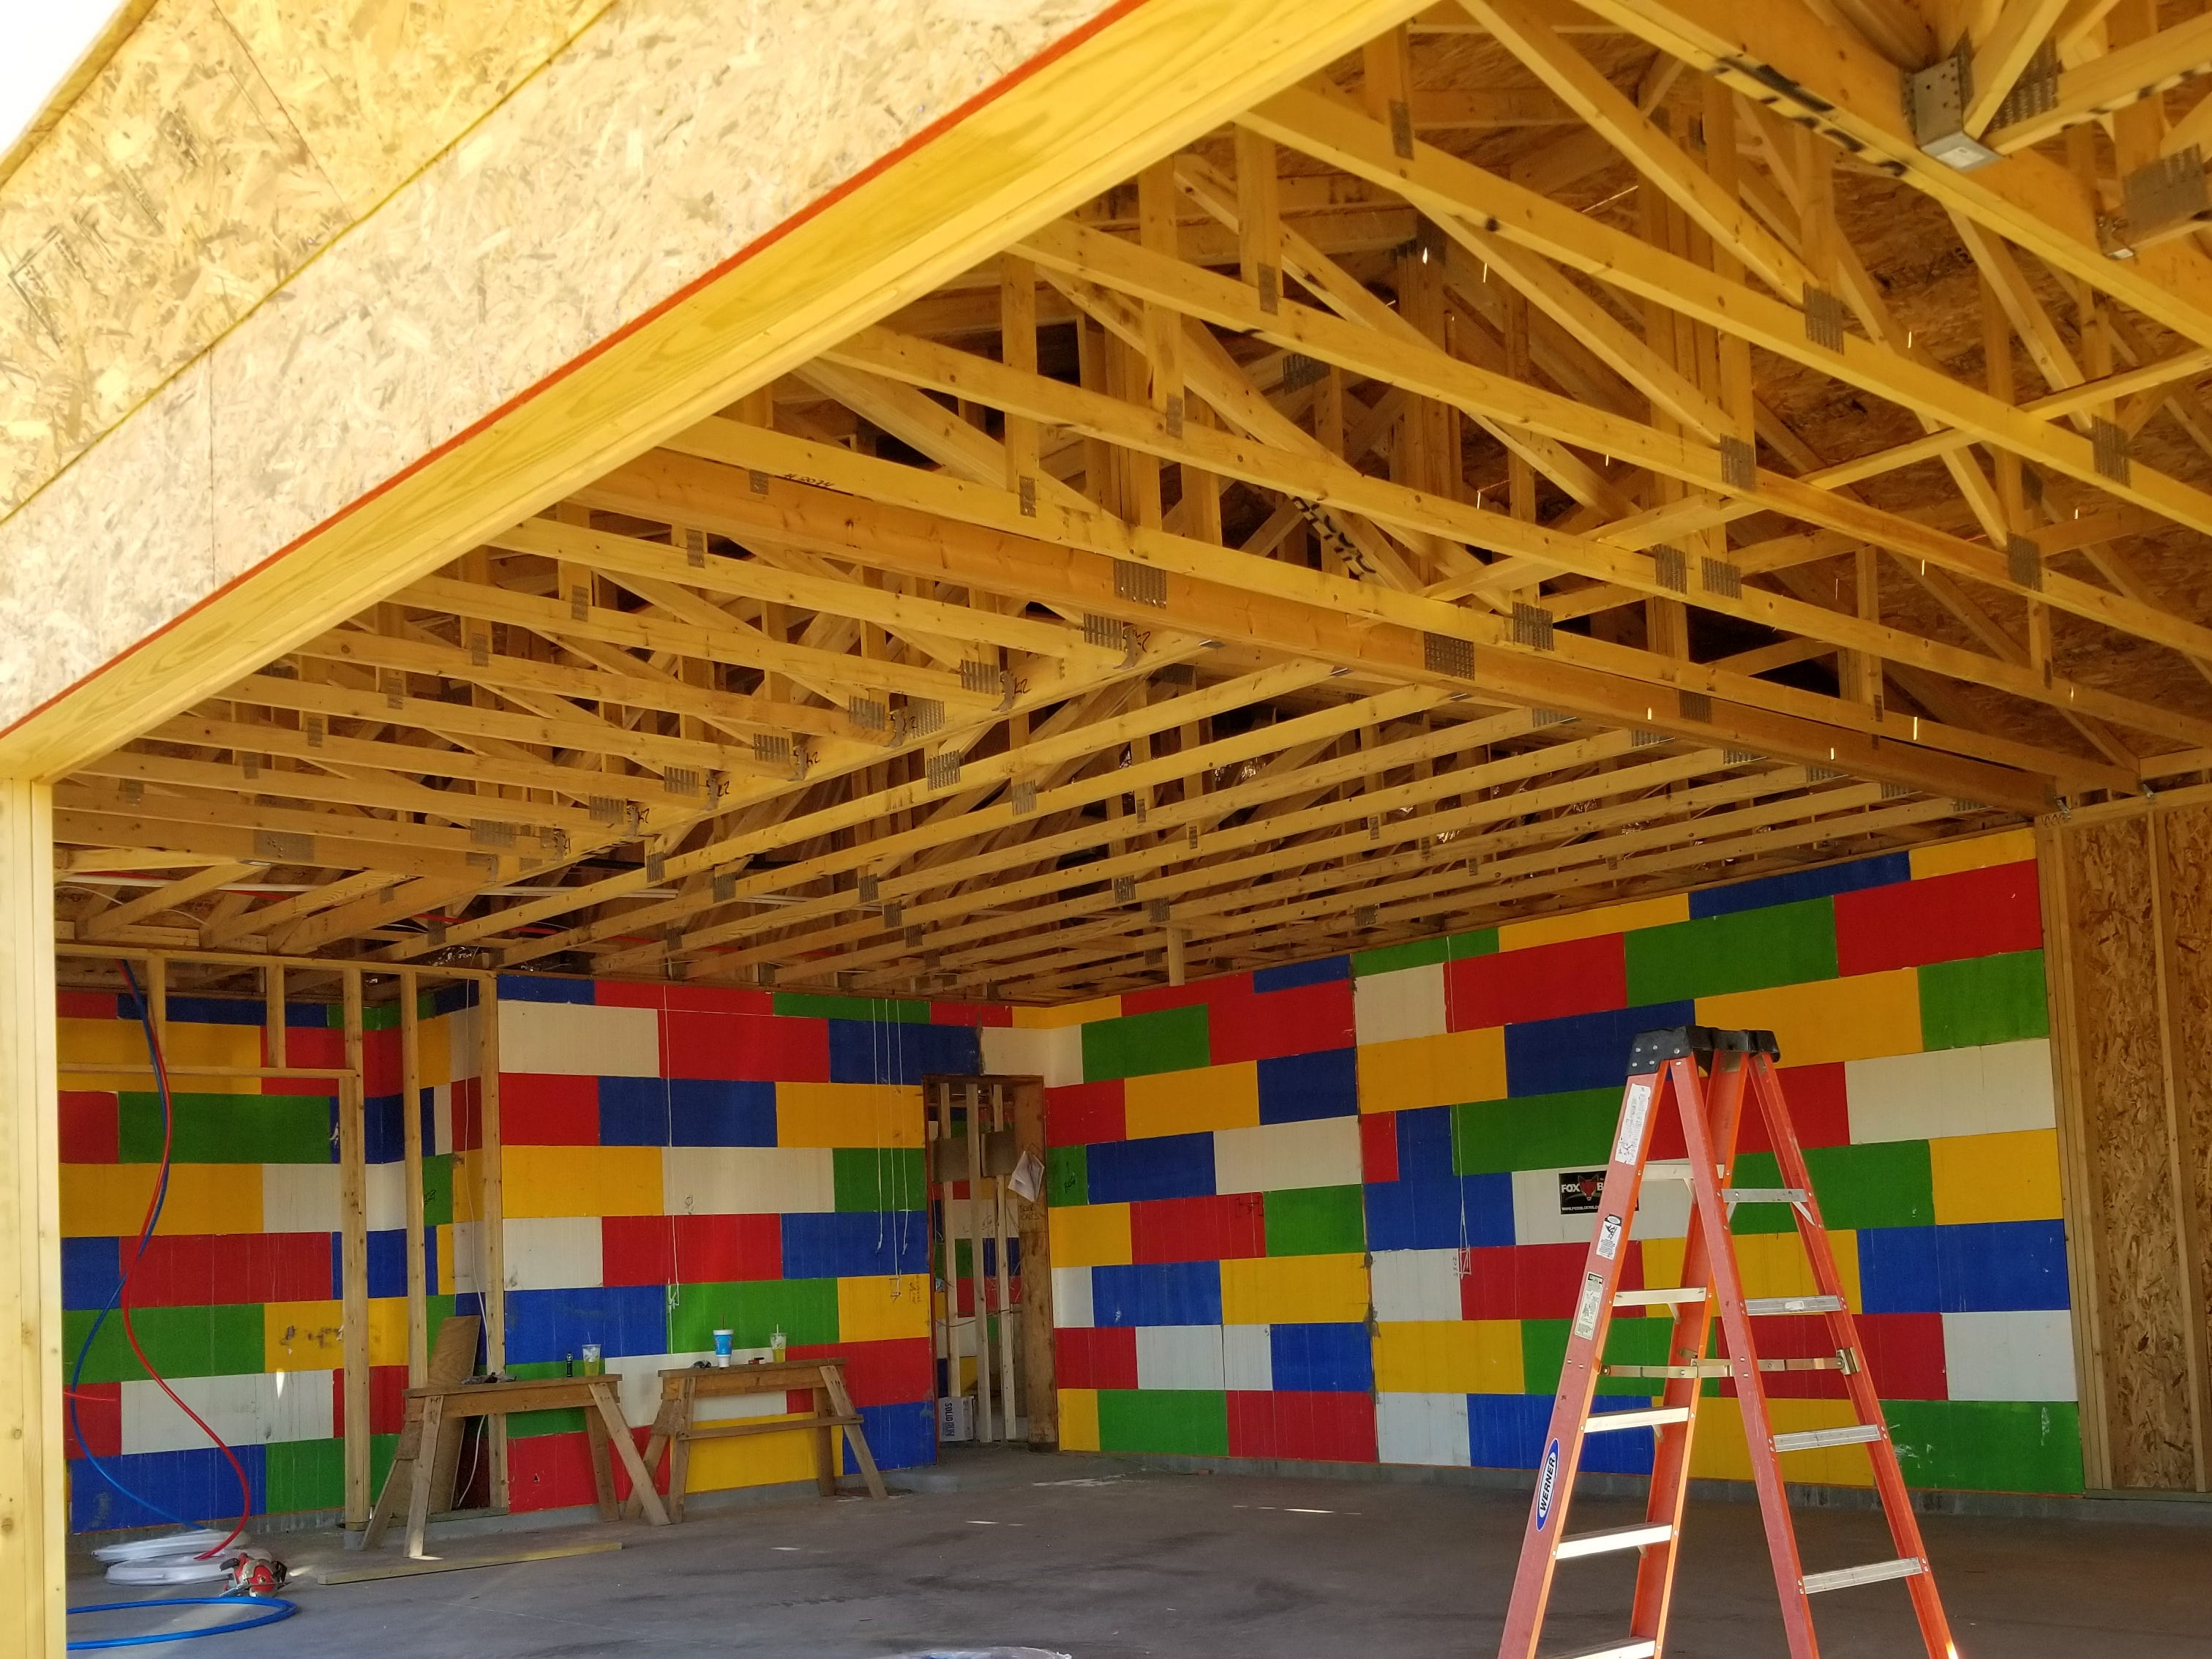 The insulating concrete form frame is present throughout the garage as well as interior sections of the home, providing excellent sound reduction as well as R-40 insulation to the west-facing area.